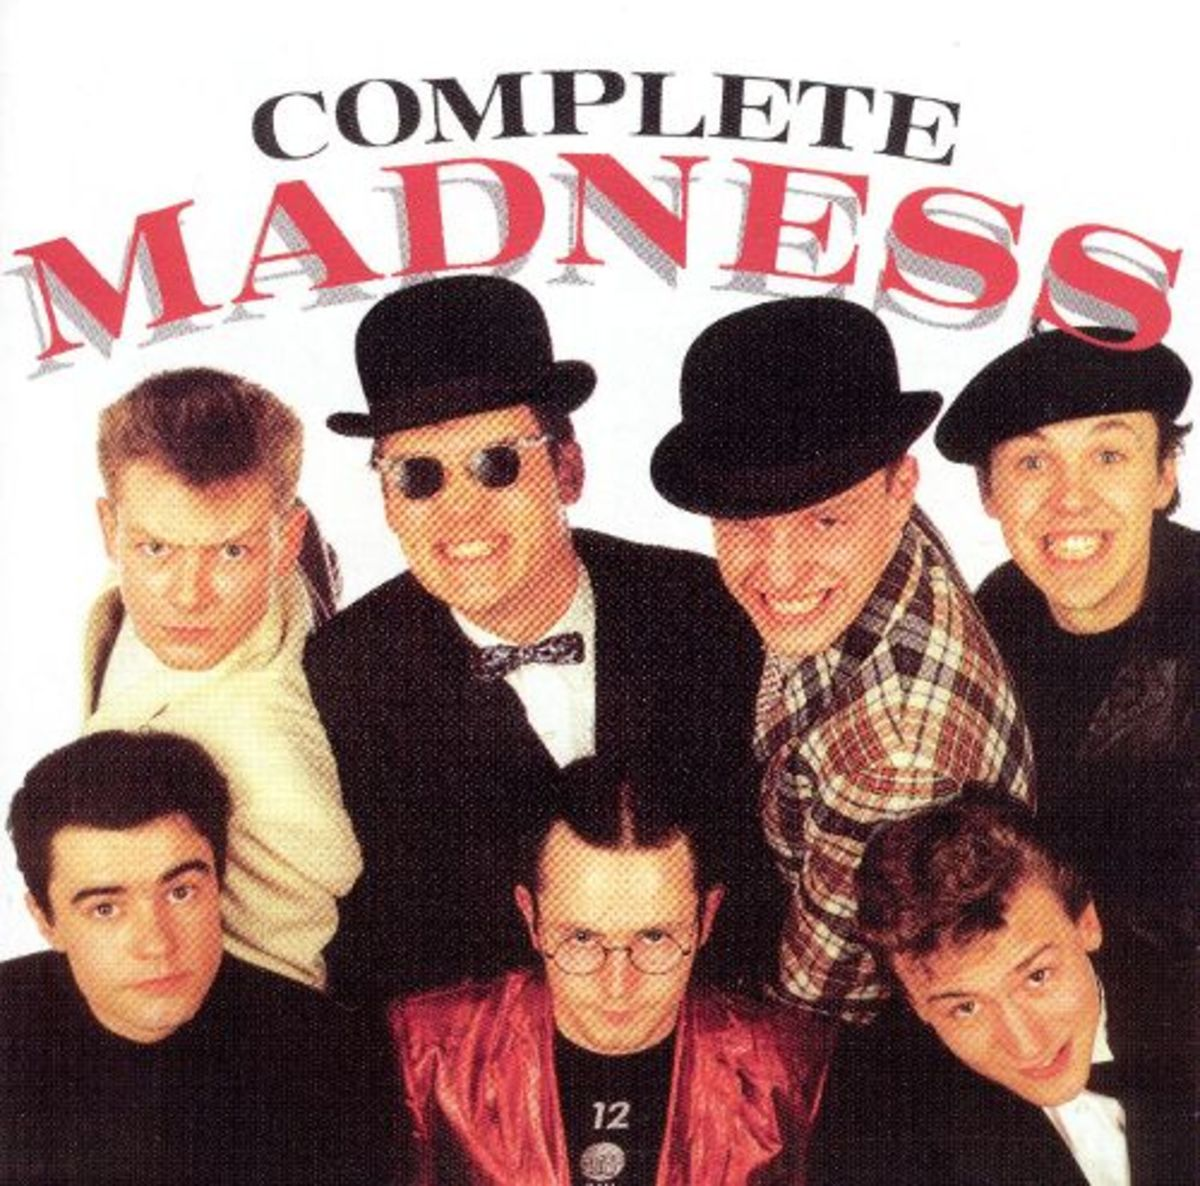 the-total-madness-album-contains-some-gems